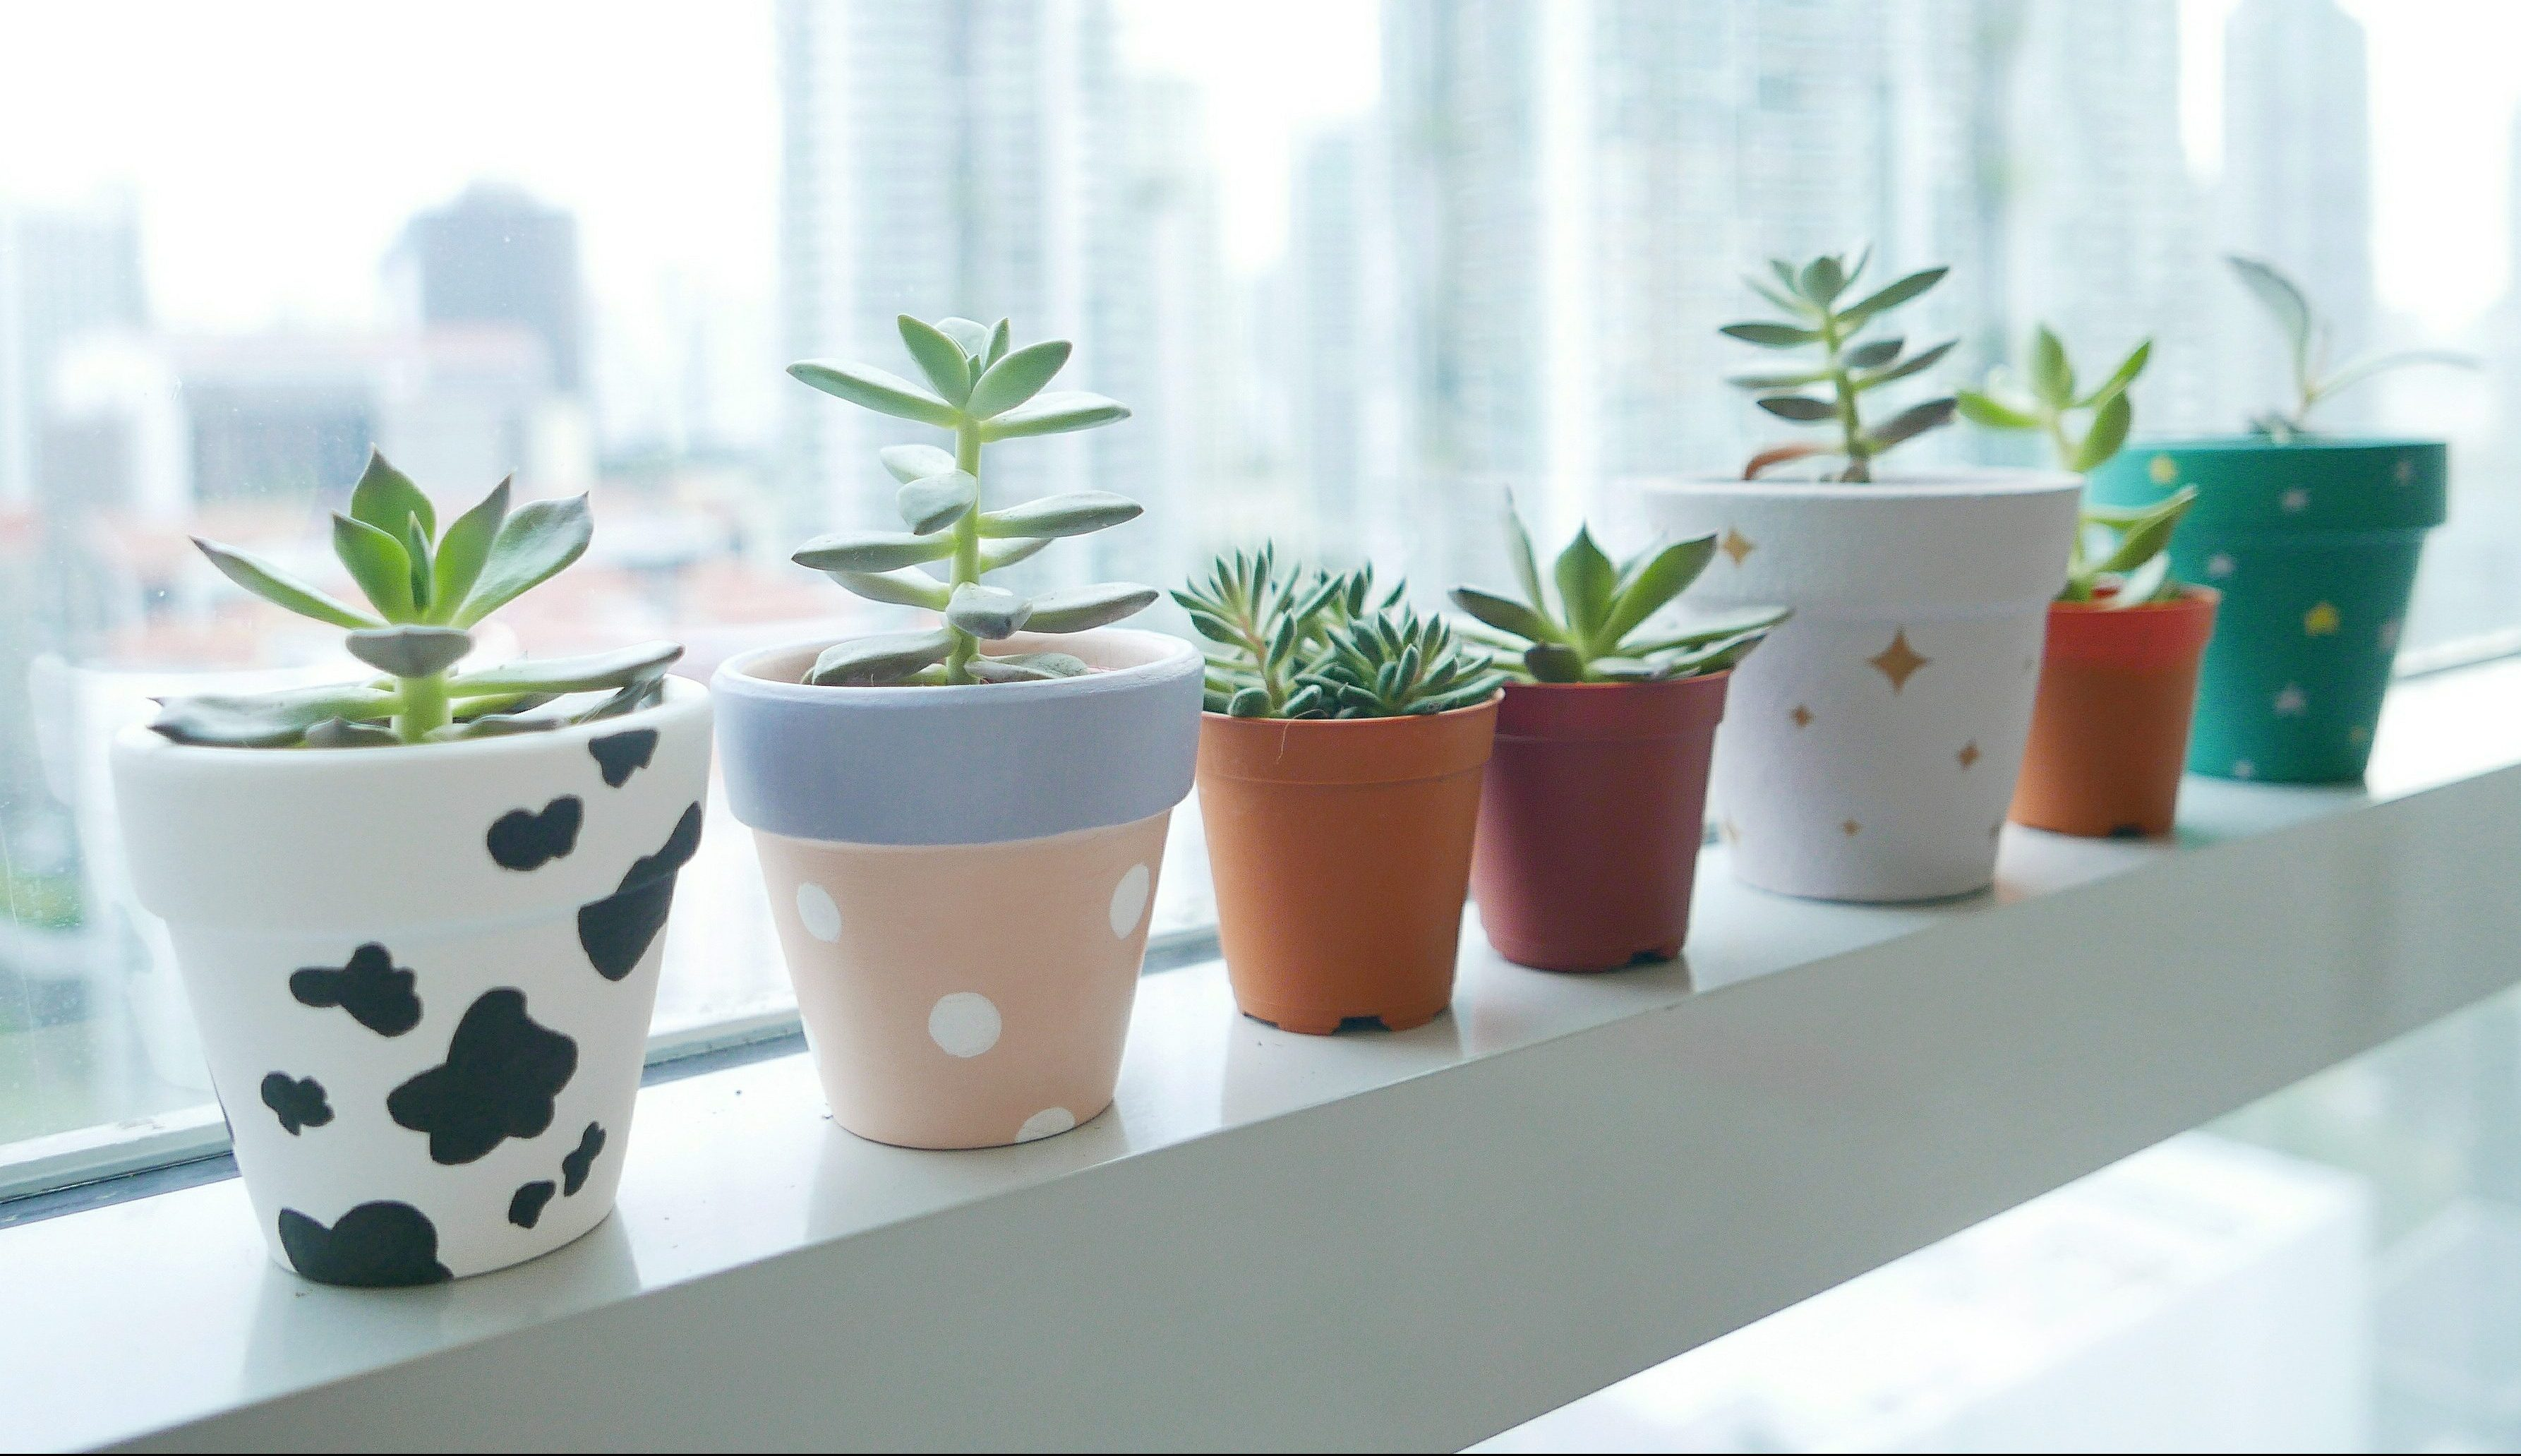 Succulents in painted pots on window sill